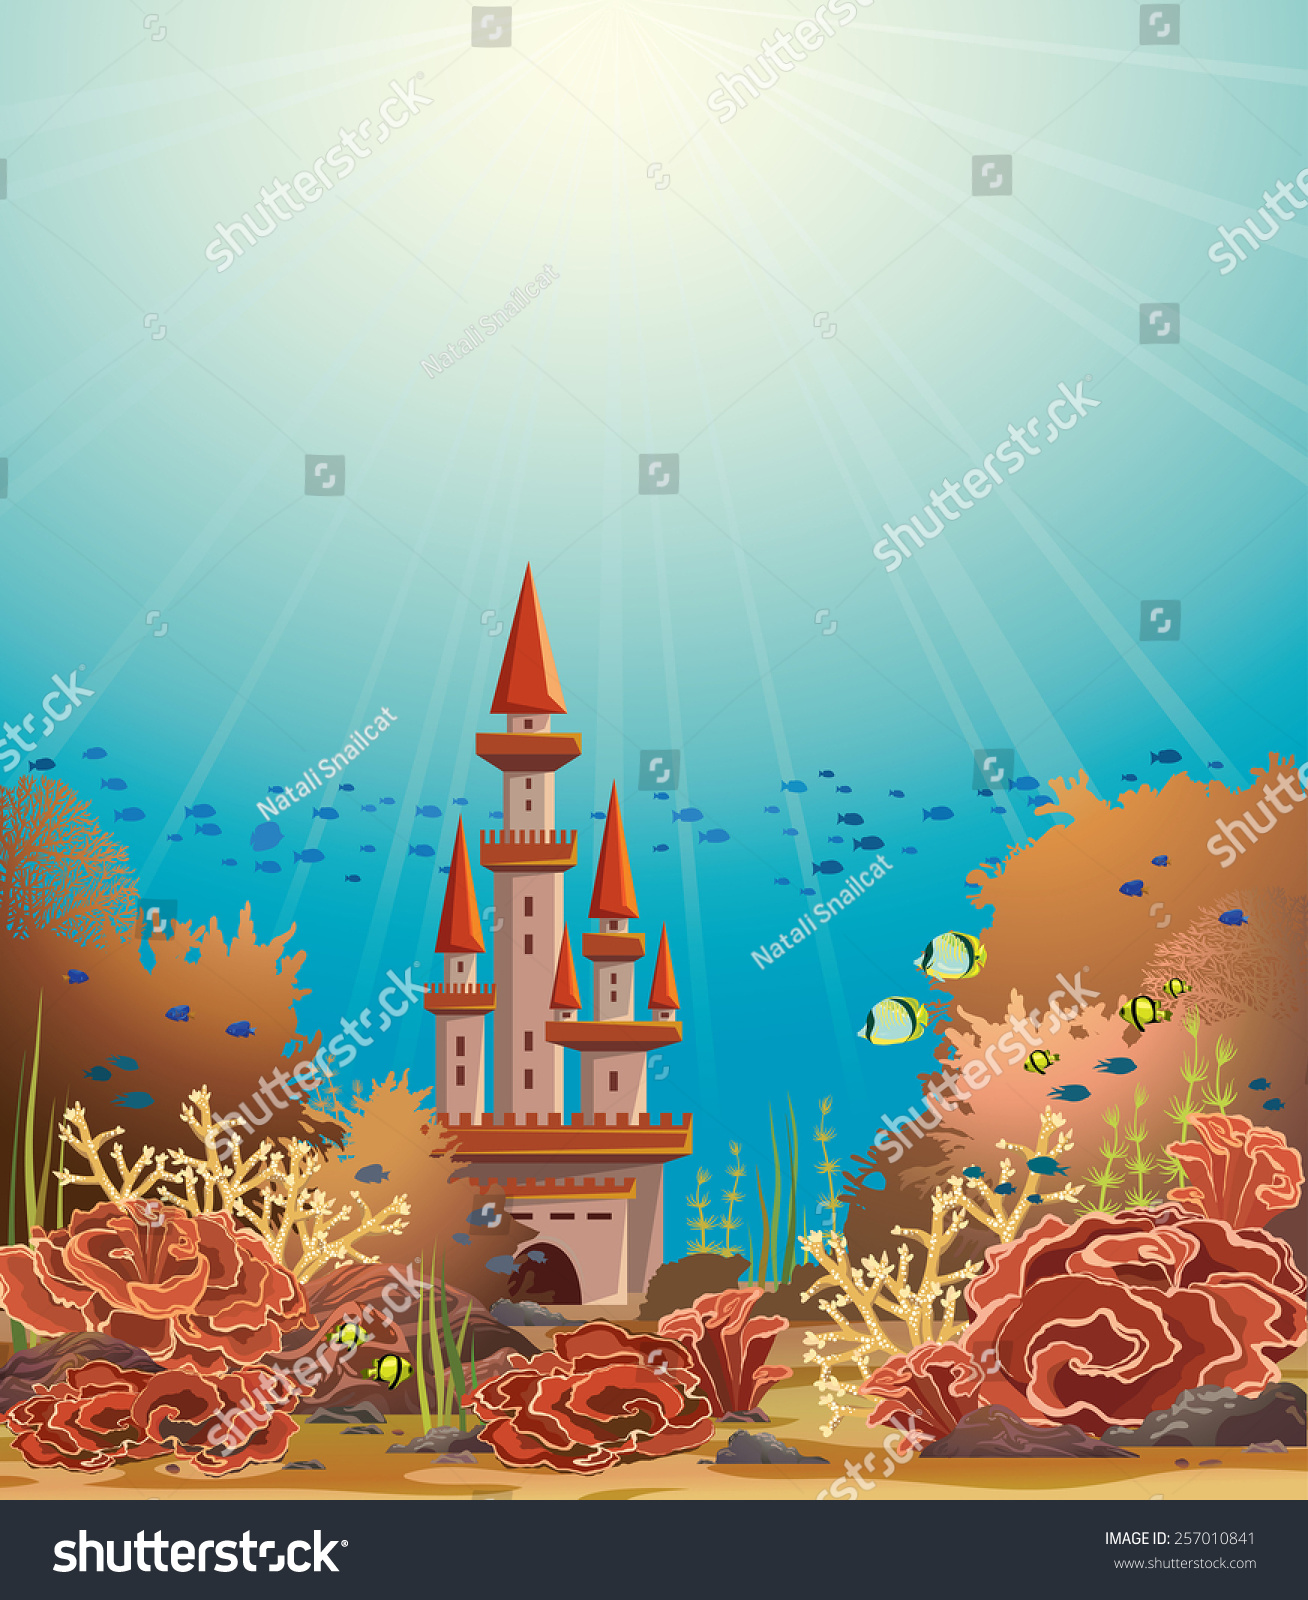 Underwater Castle And Colorful Coral Reef With Tropical